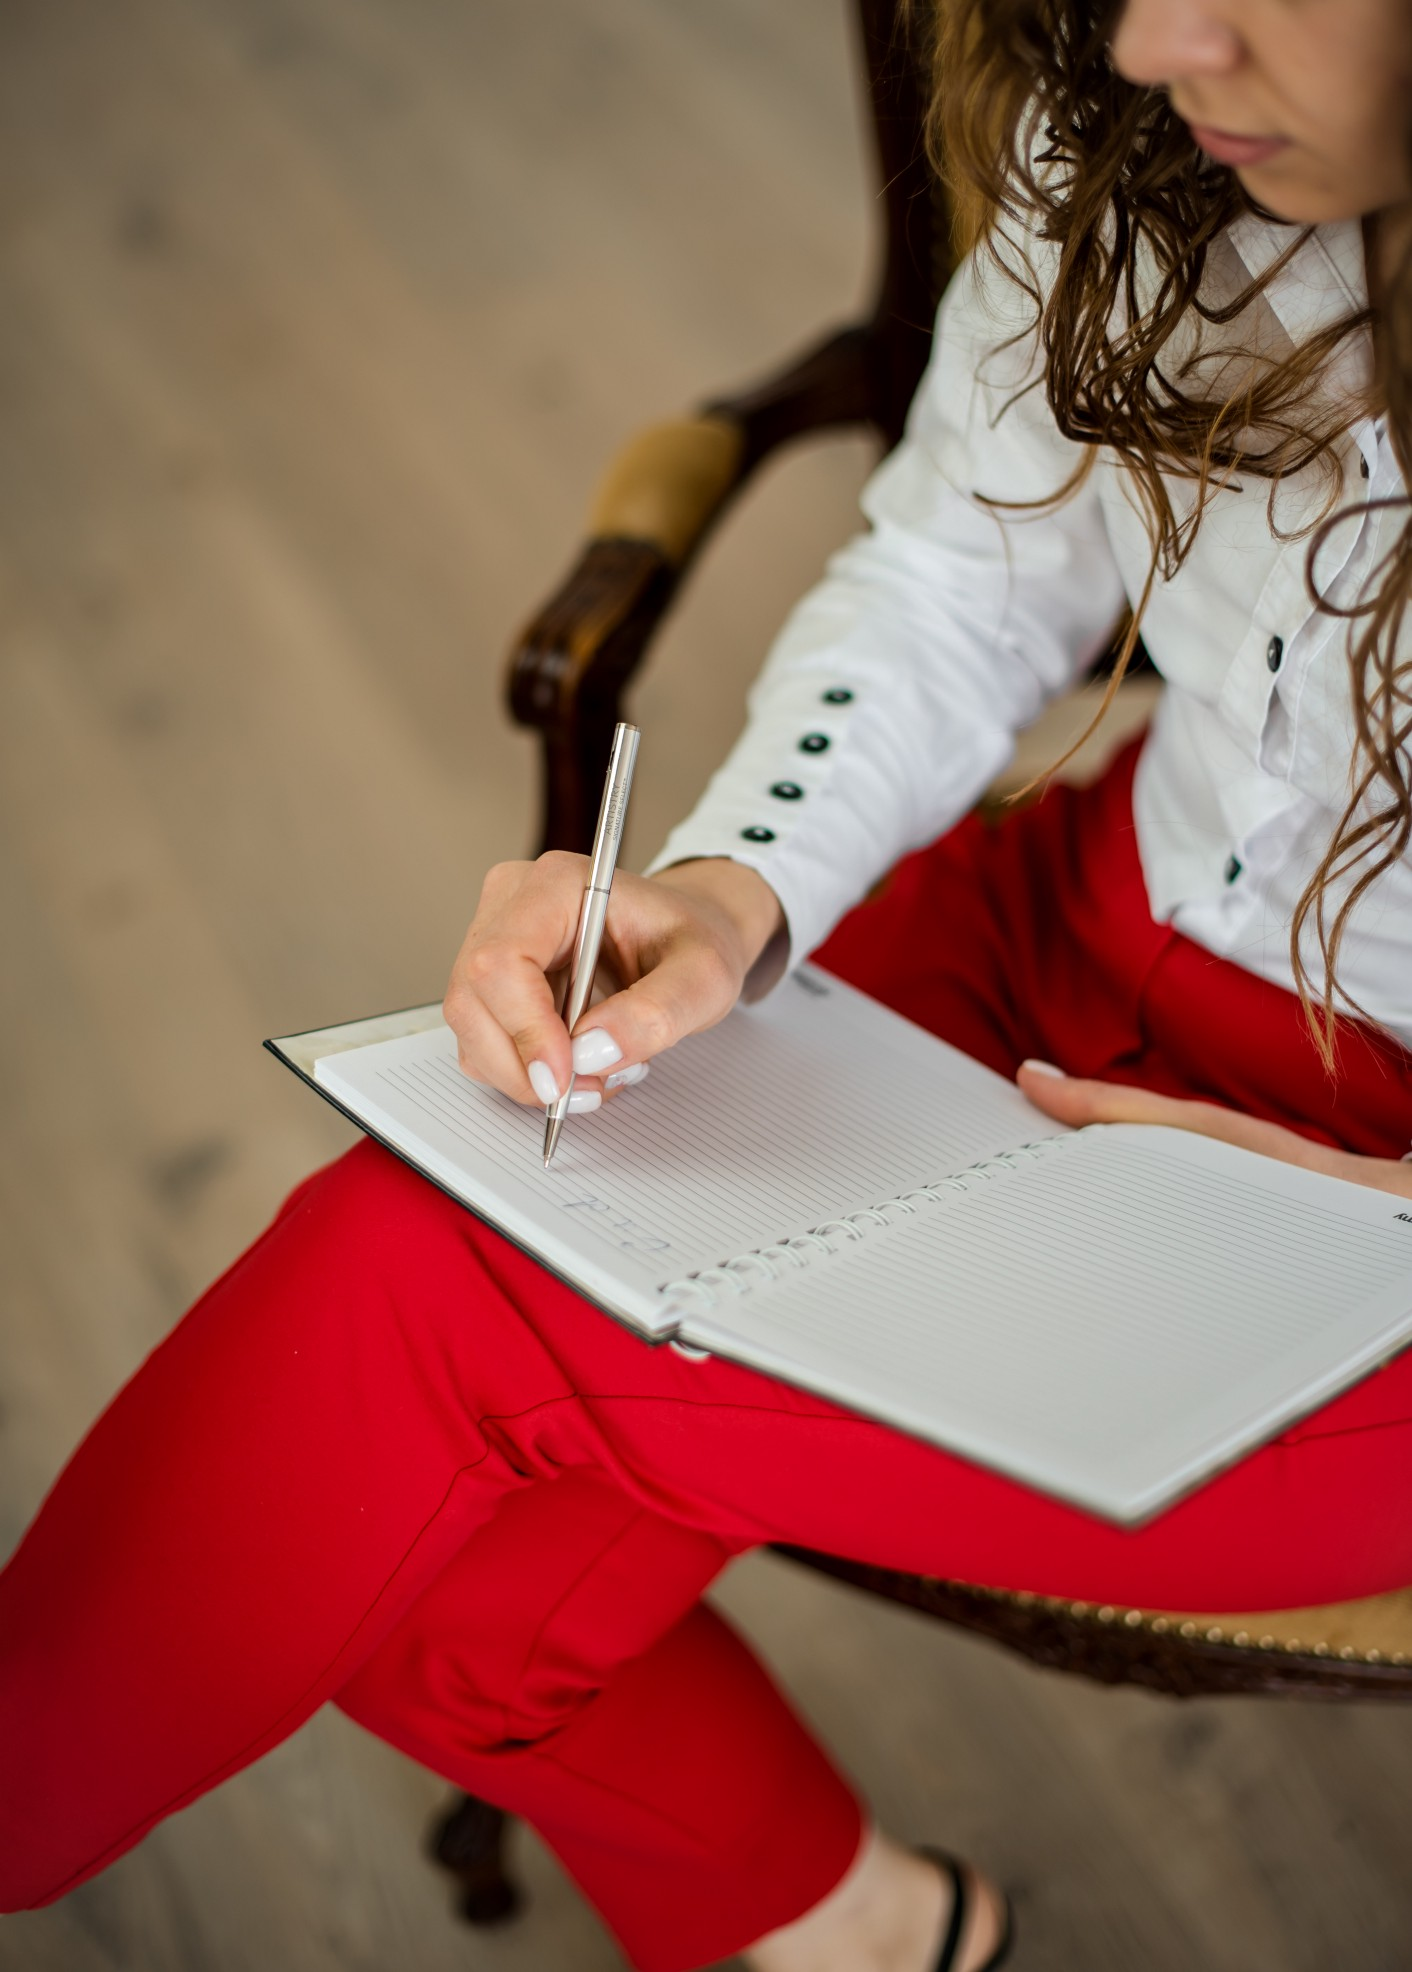 Image of a woman in red pants, writing in a notebook.